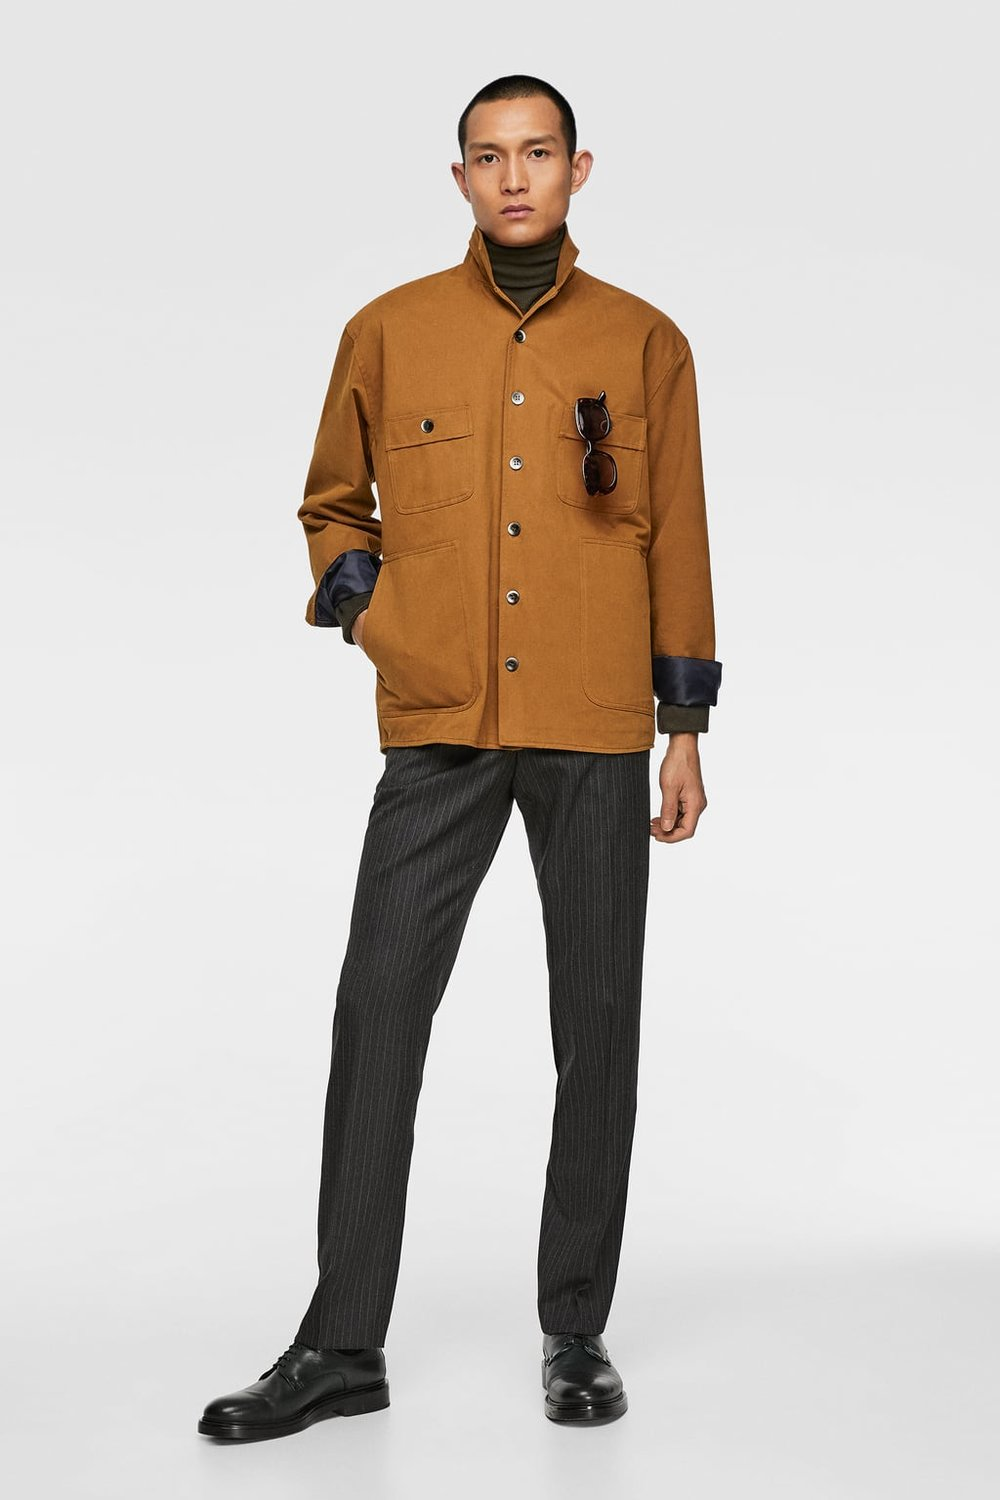 camel mens shirt.jpg